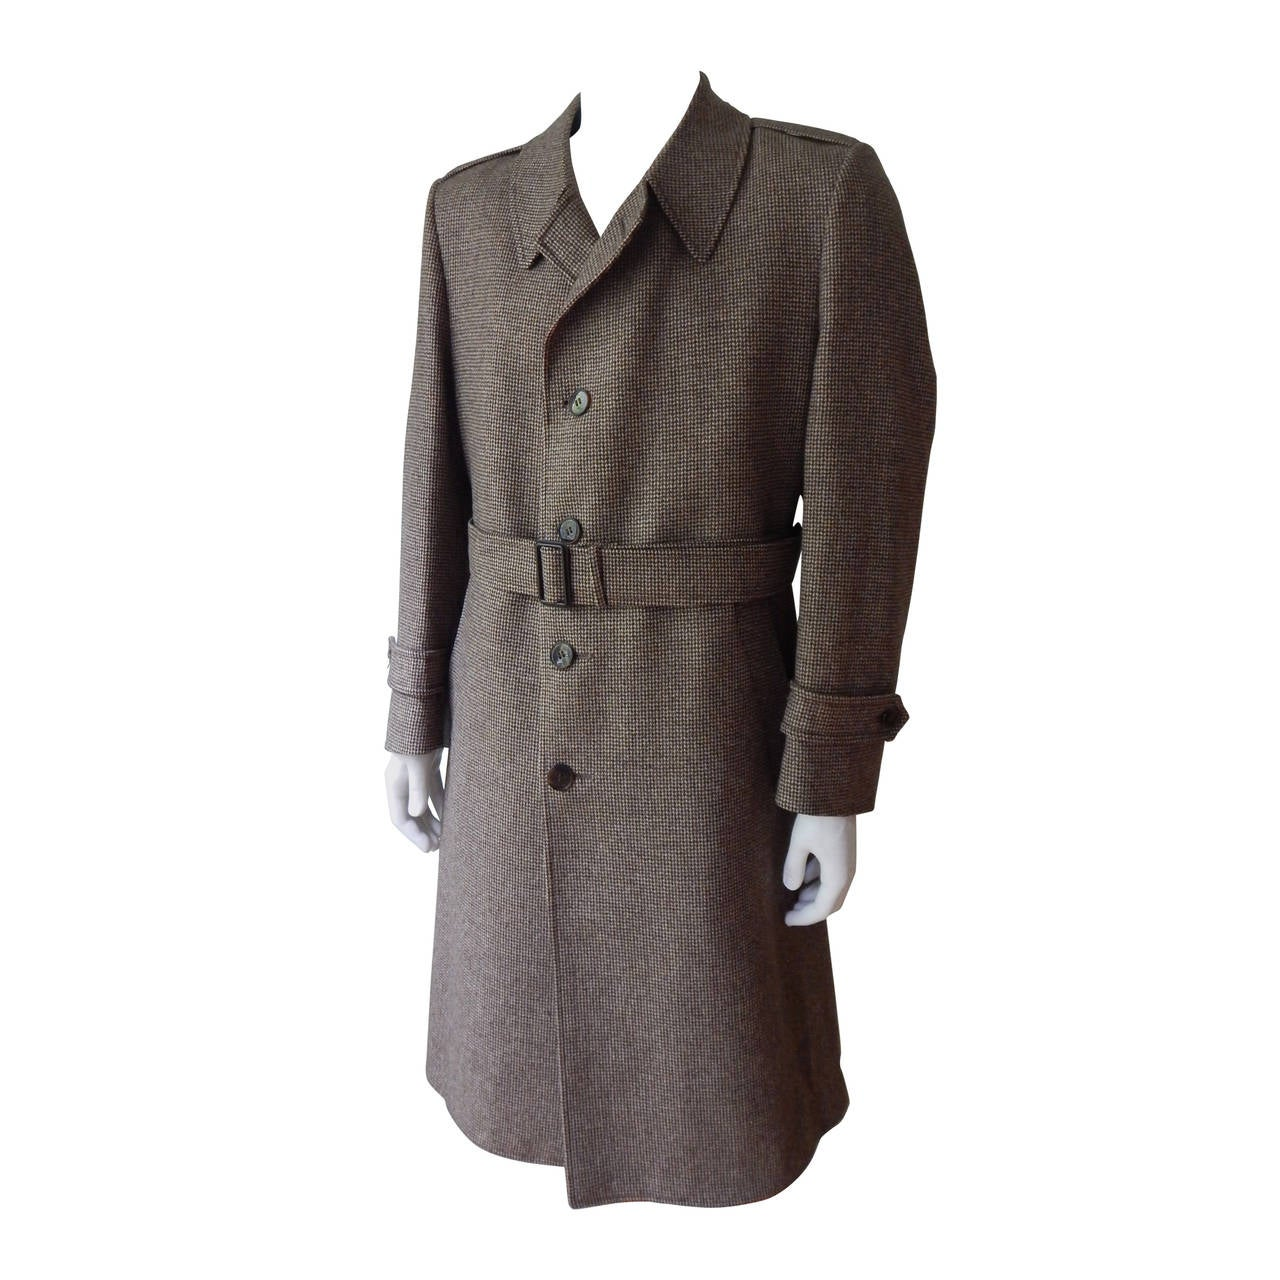 Yves Saint Laurent Mens Coat